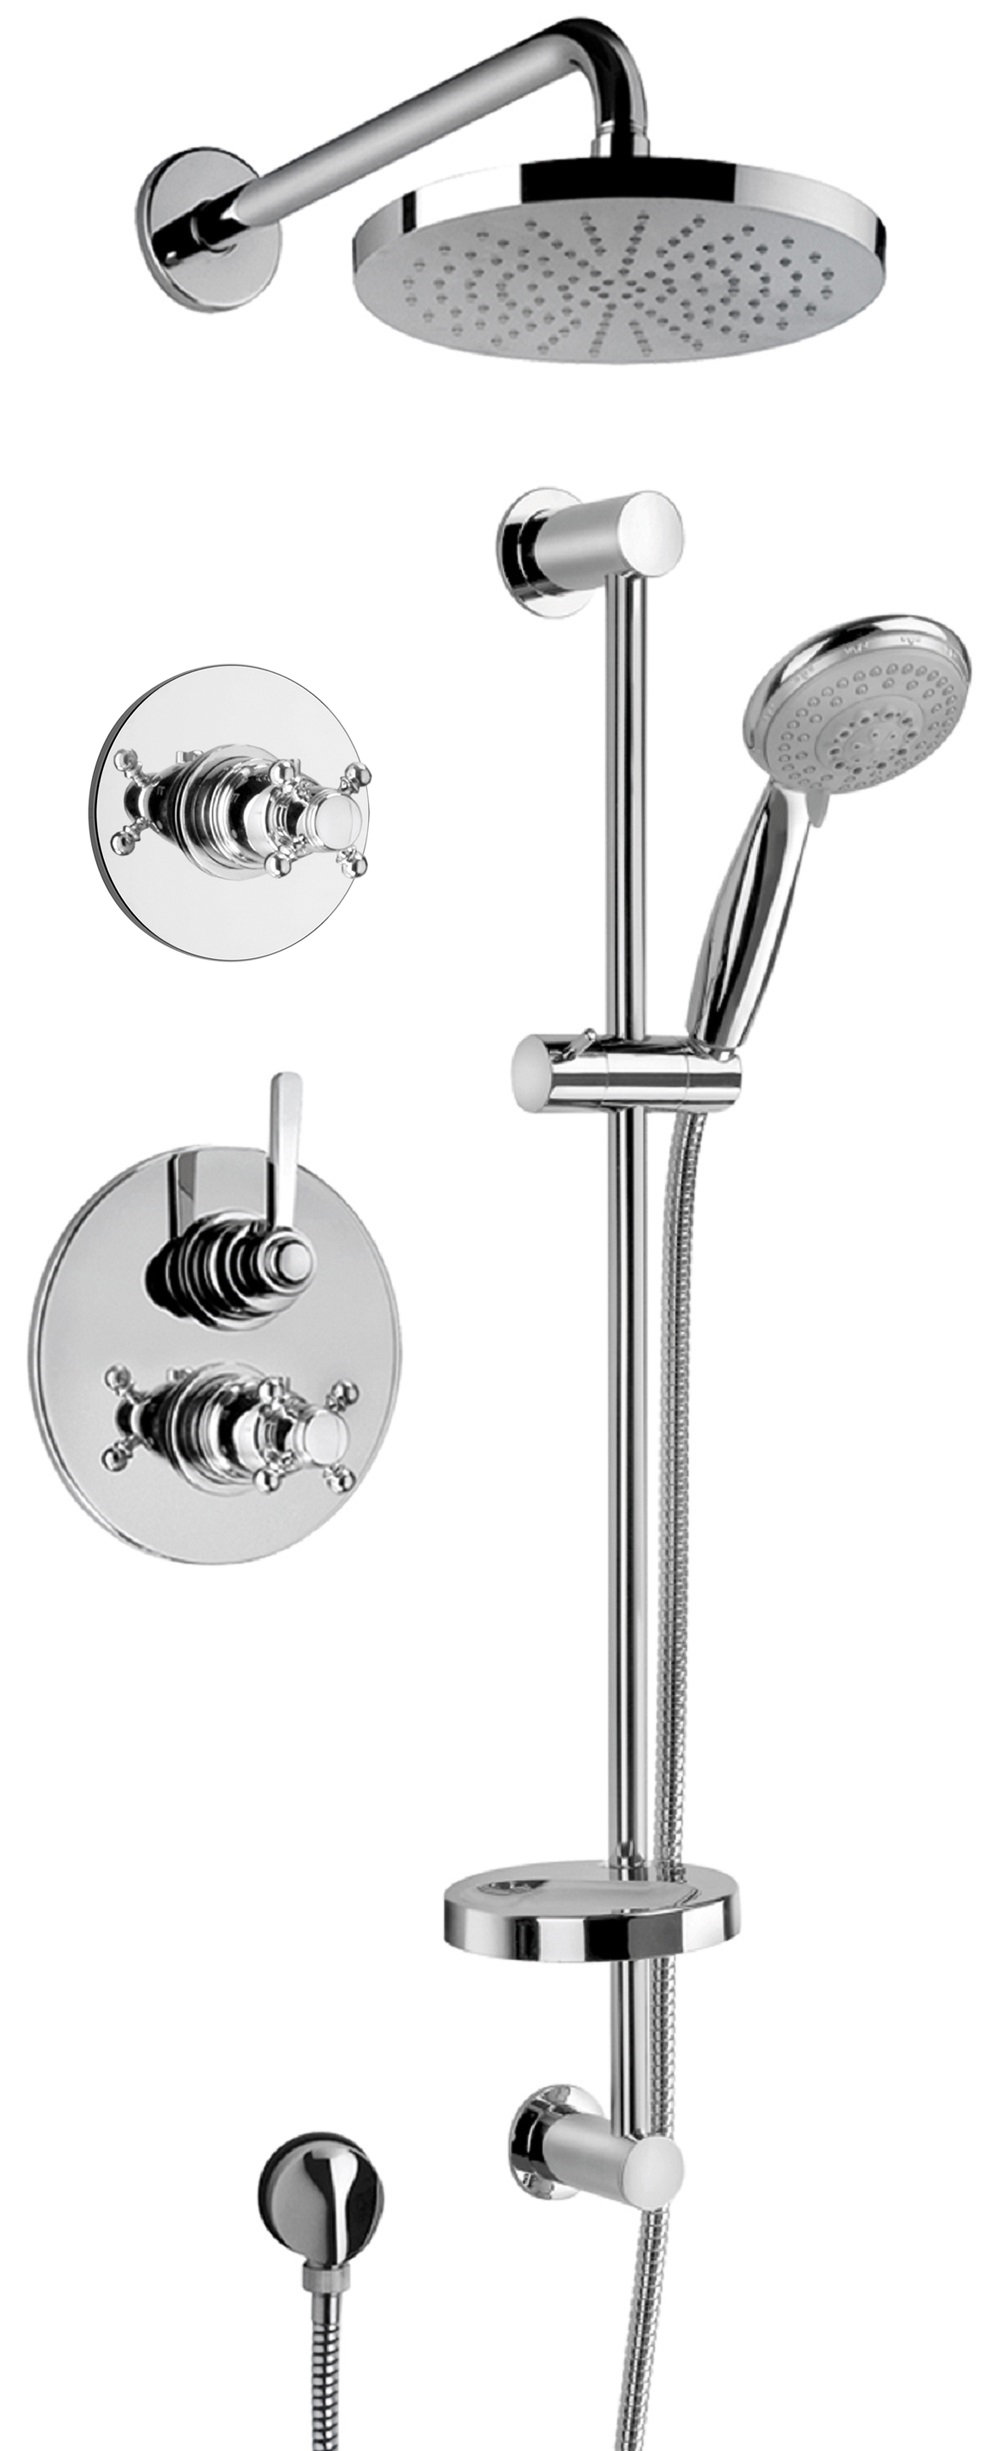 "Thermostatic Shower With 3/4"" Ceramic Disc Volume Control, 3-Way Diverter, Slide Bar in Chrome Finish"